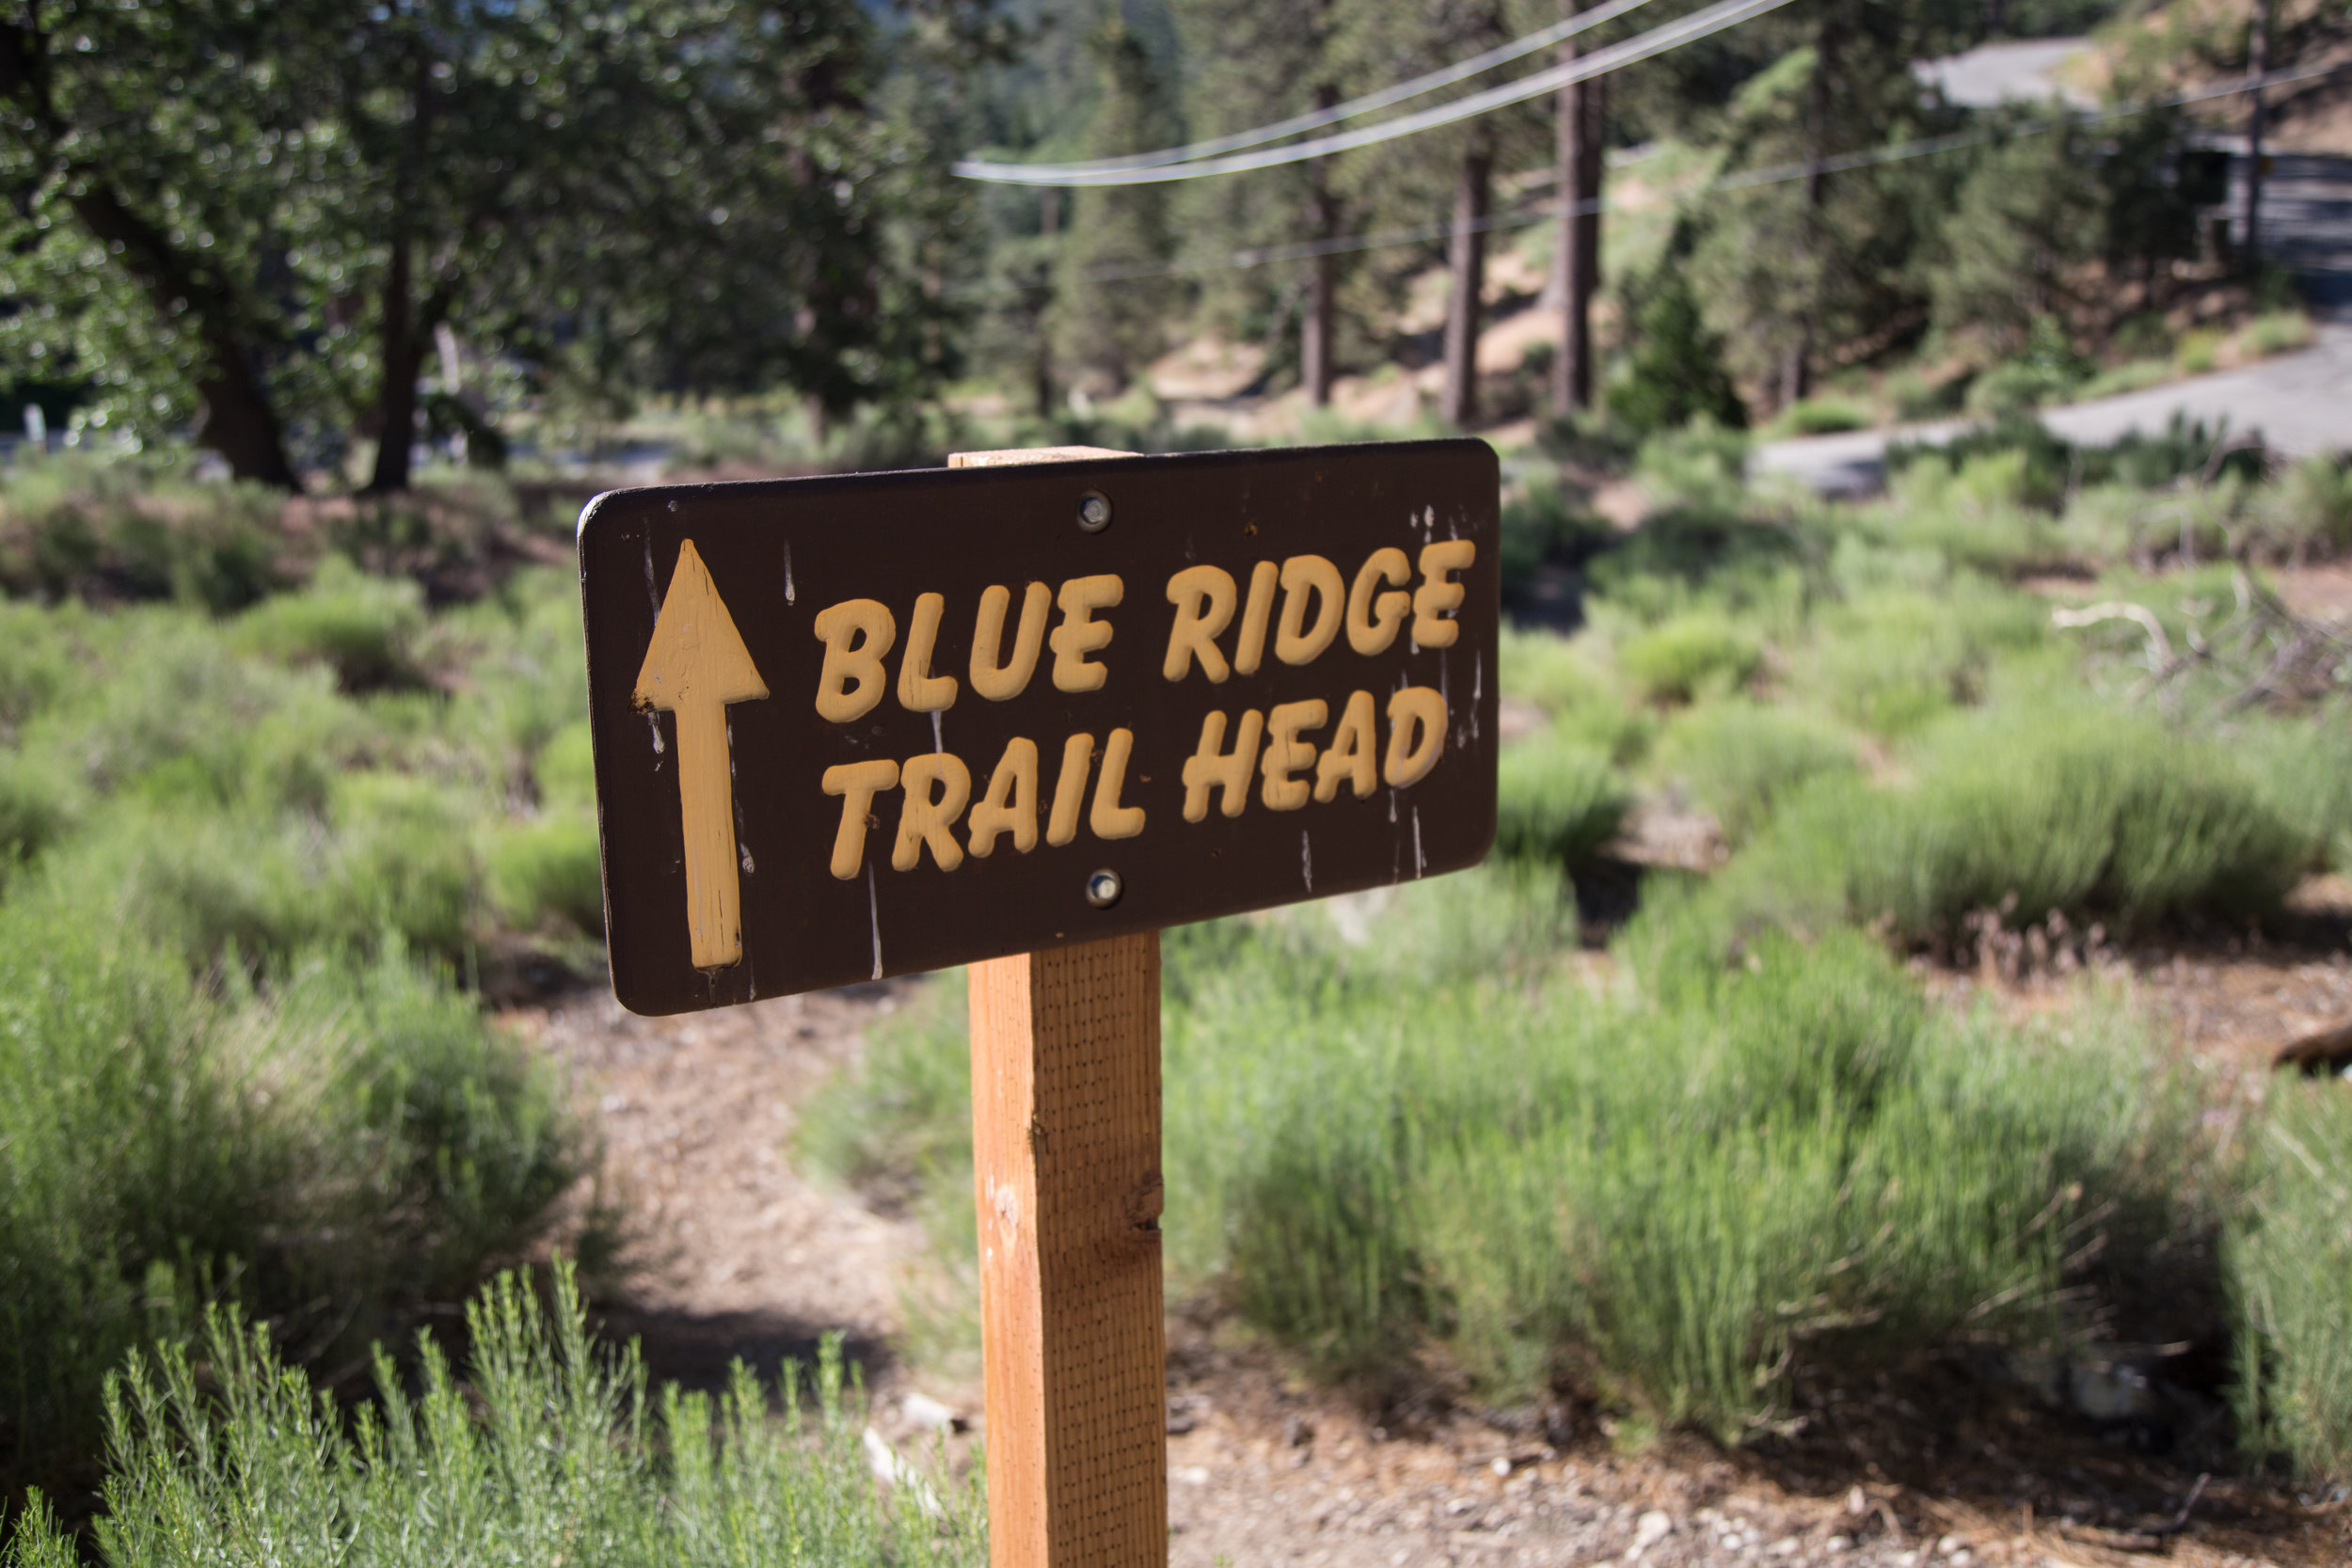 Start of the trail located across the street from the Big Pines Ranger Station